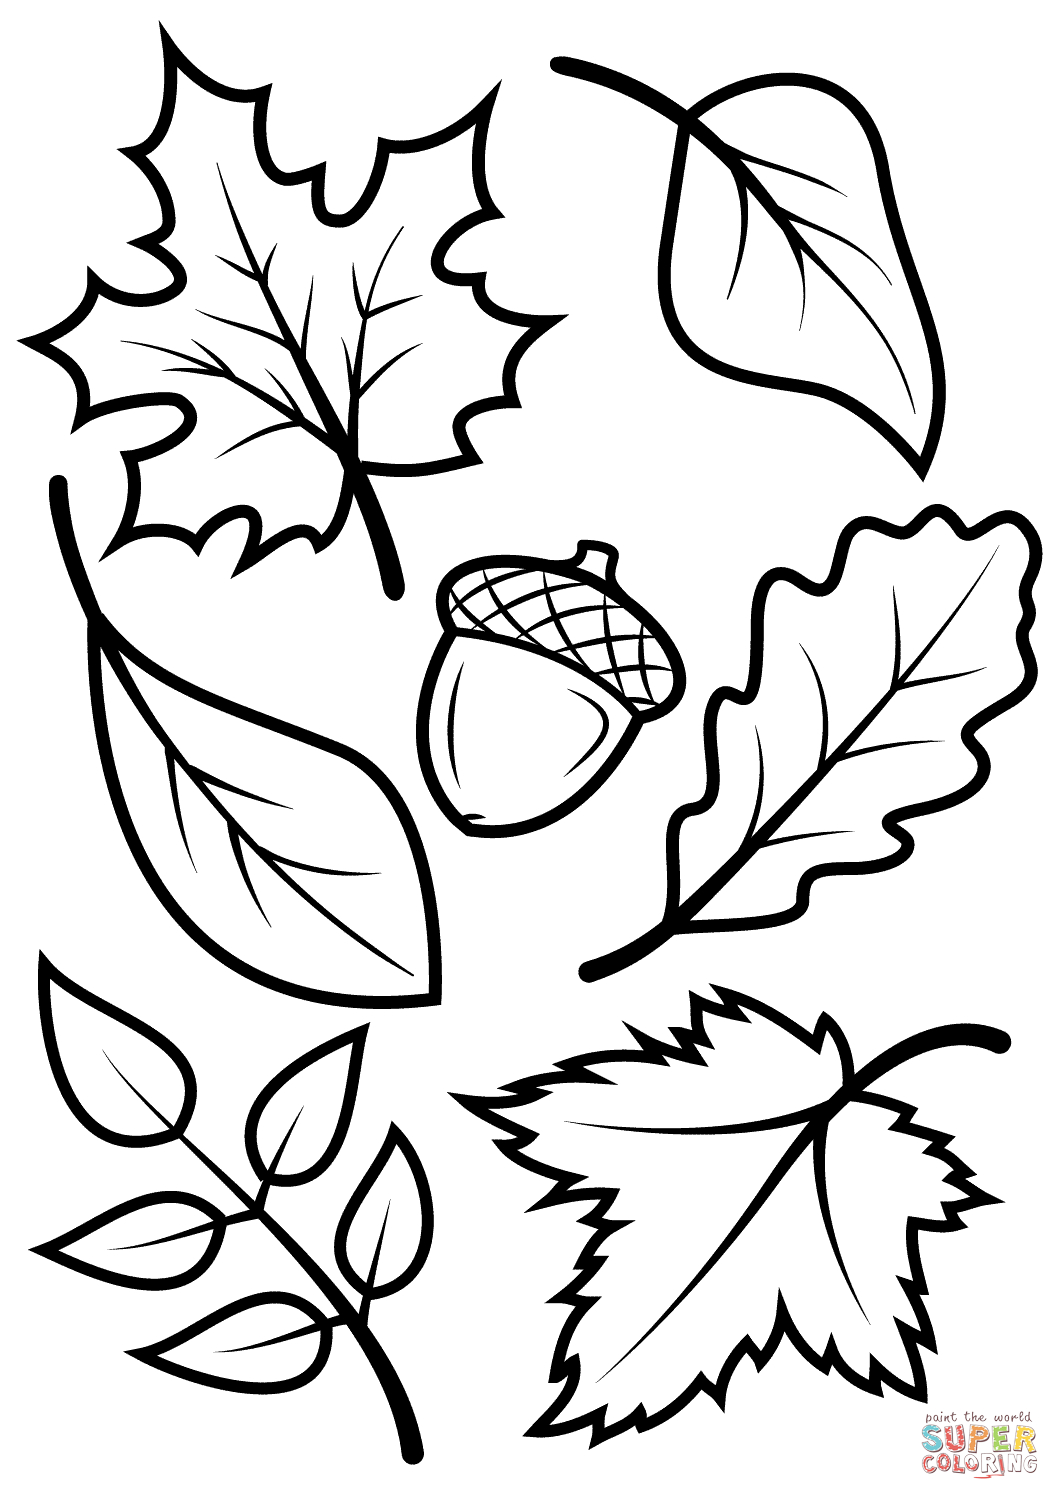 Fall Leaves And Acorn Coloring Page | Free Printable Coloring Pages - Free Printable Fall Leaves Coloring Pages